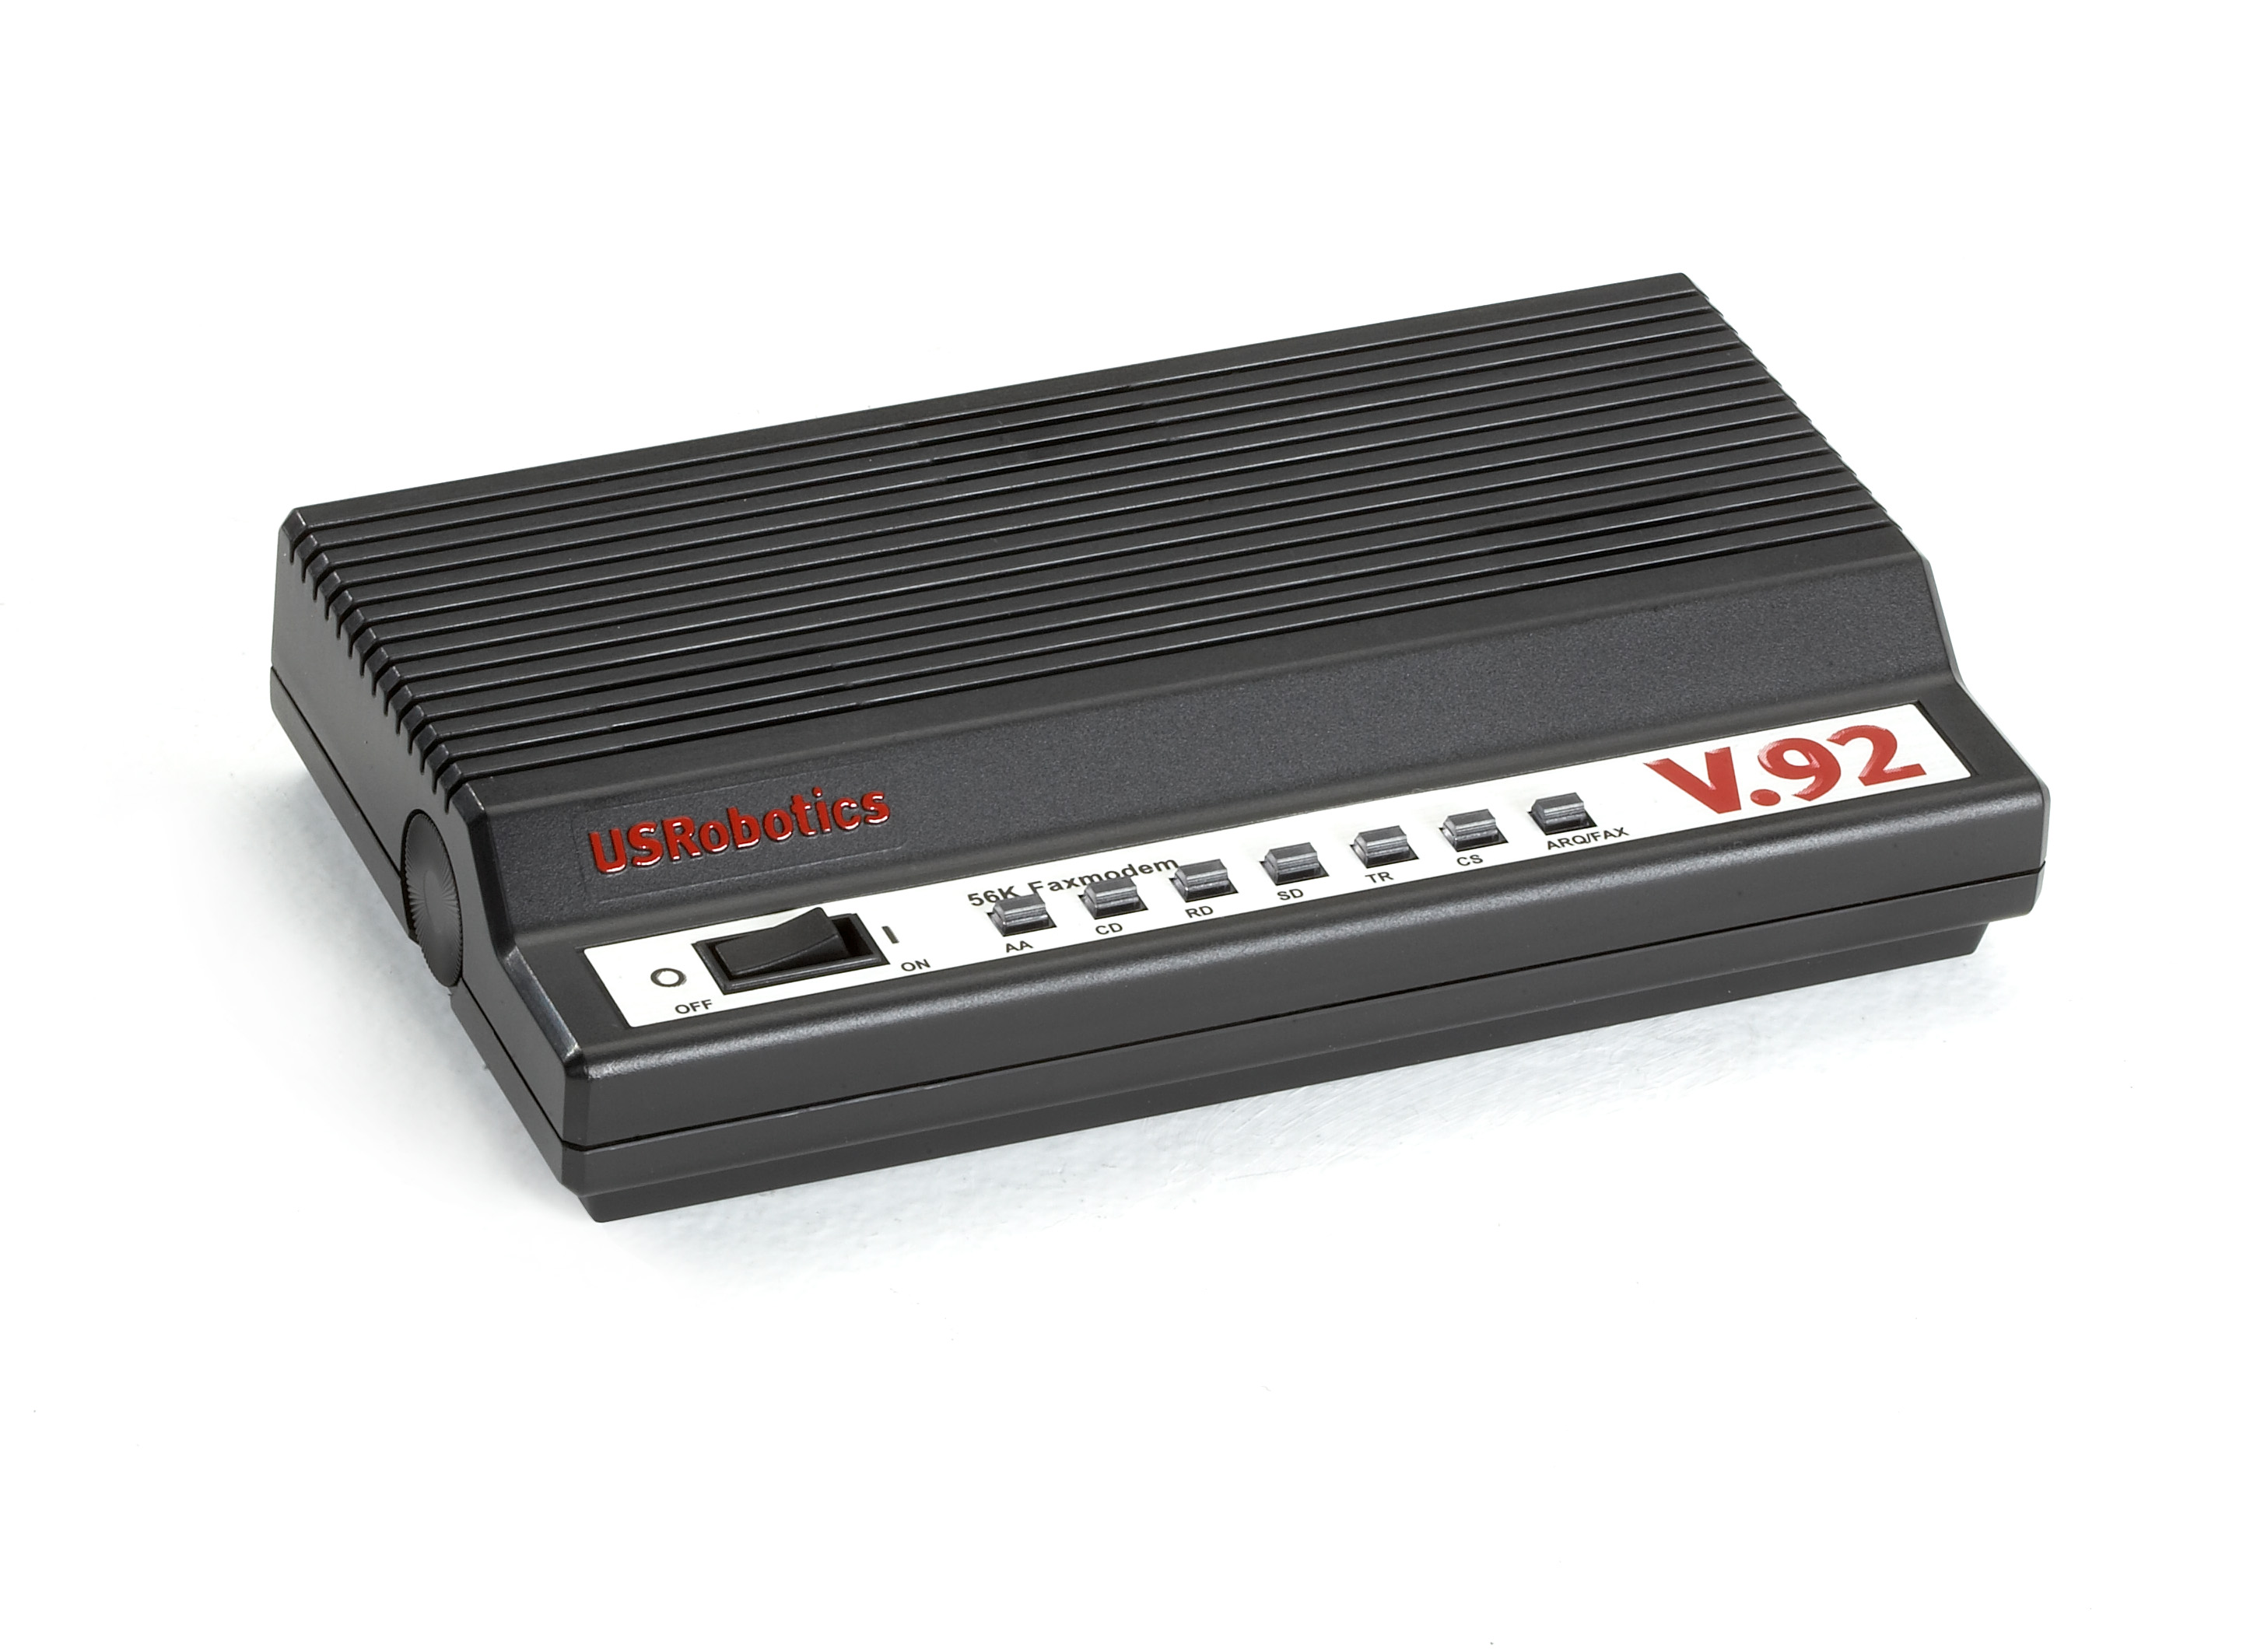 US Robotics V92 Data Faxmodem